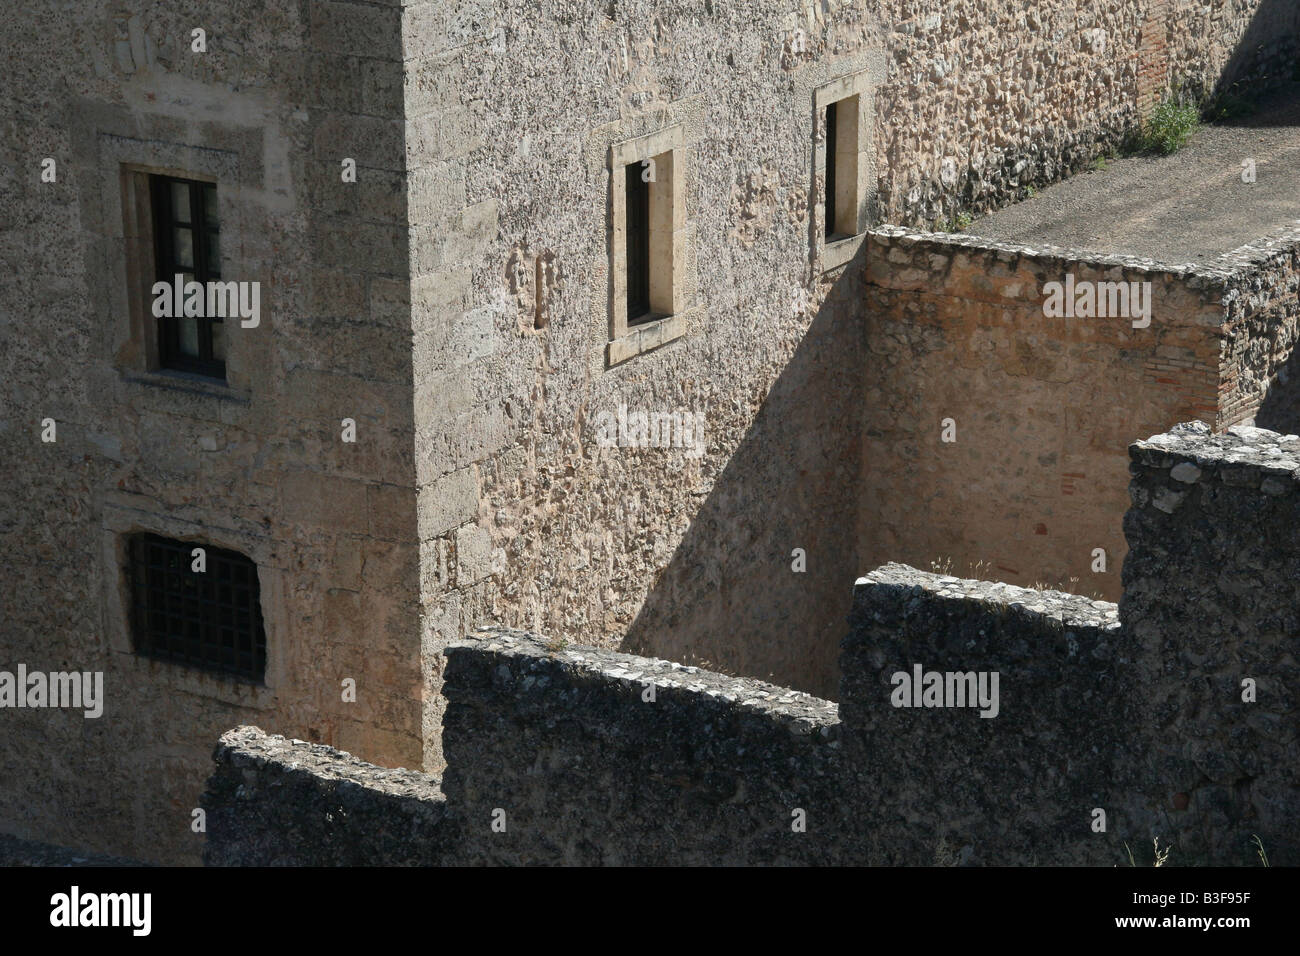 Old stone buildings and walls in Cuenca, Spain. - Stock Image